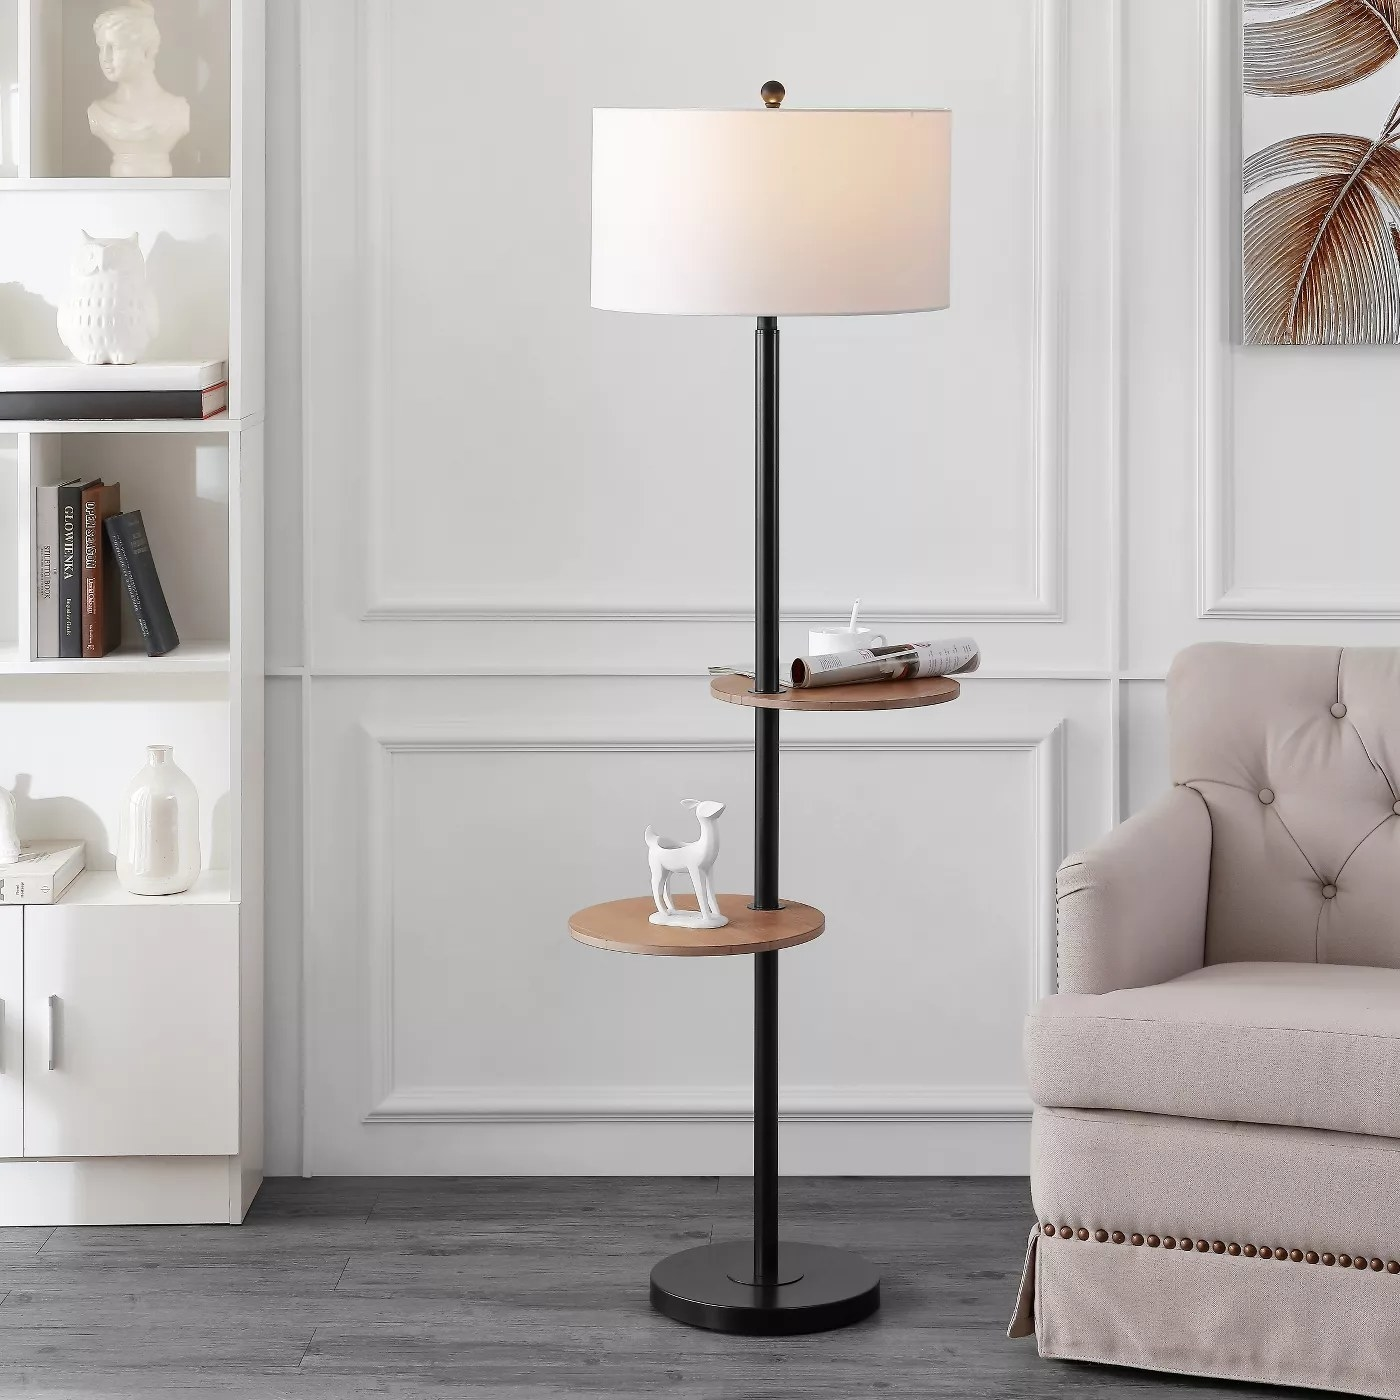 The floor lamp with two shelves